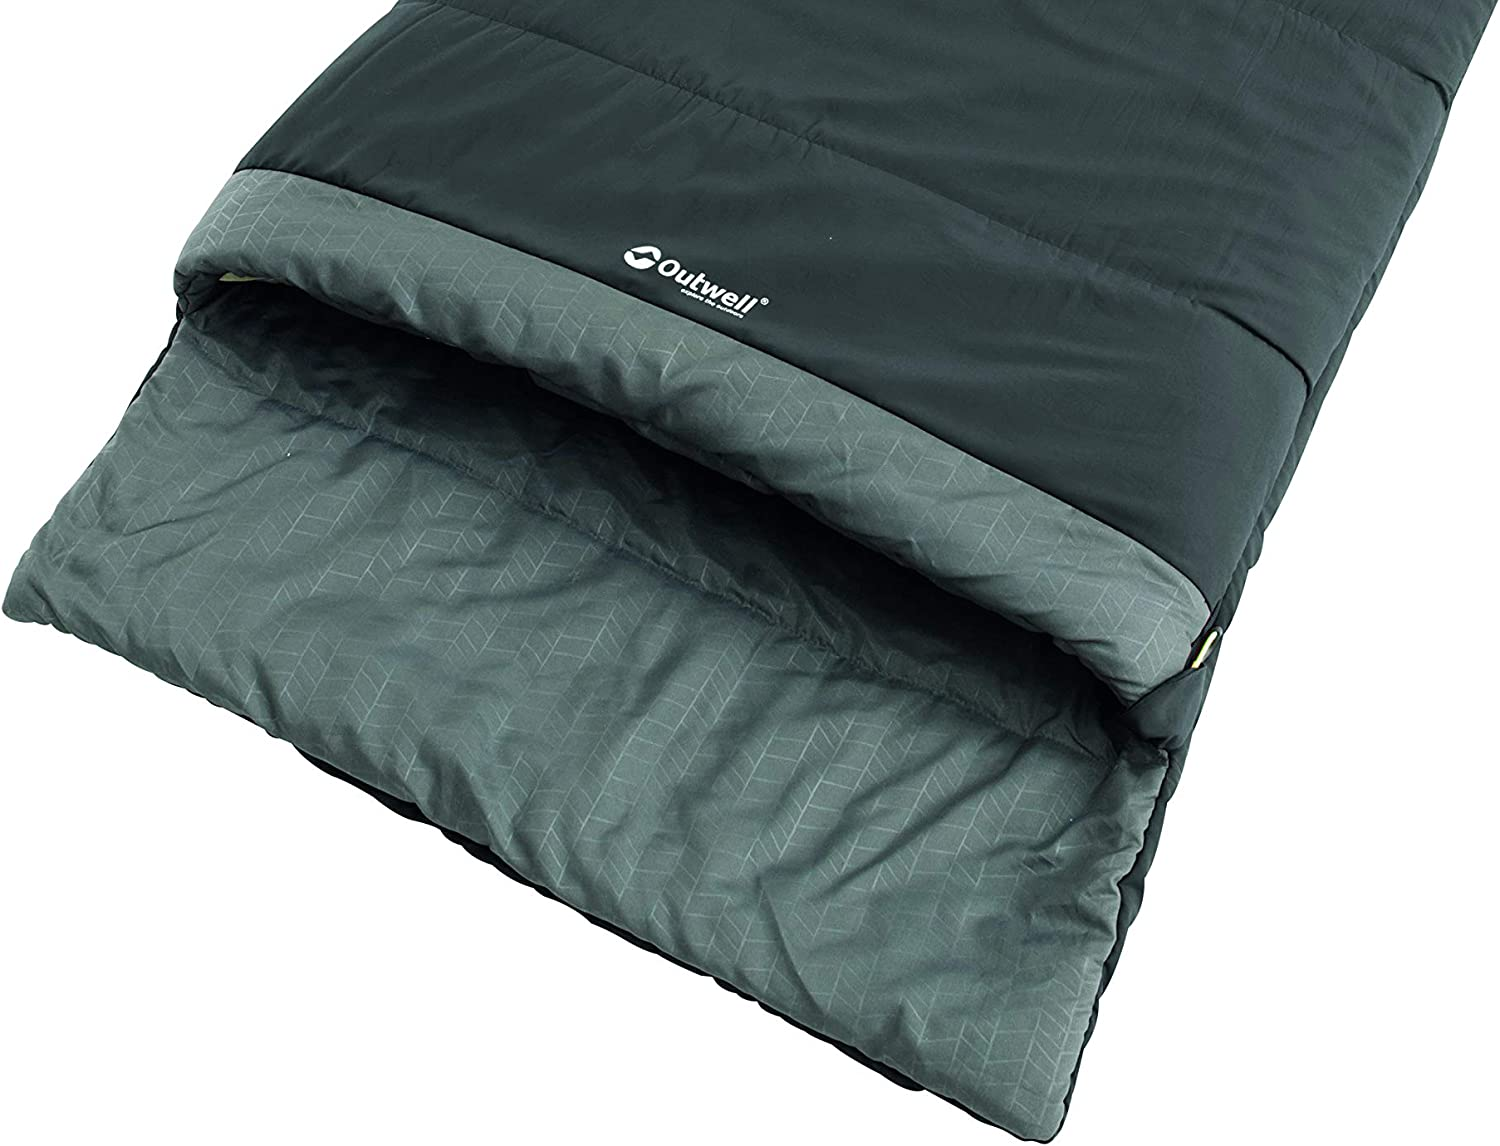 Outwell Lux Celebration Sleeping Bag